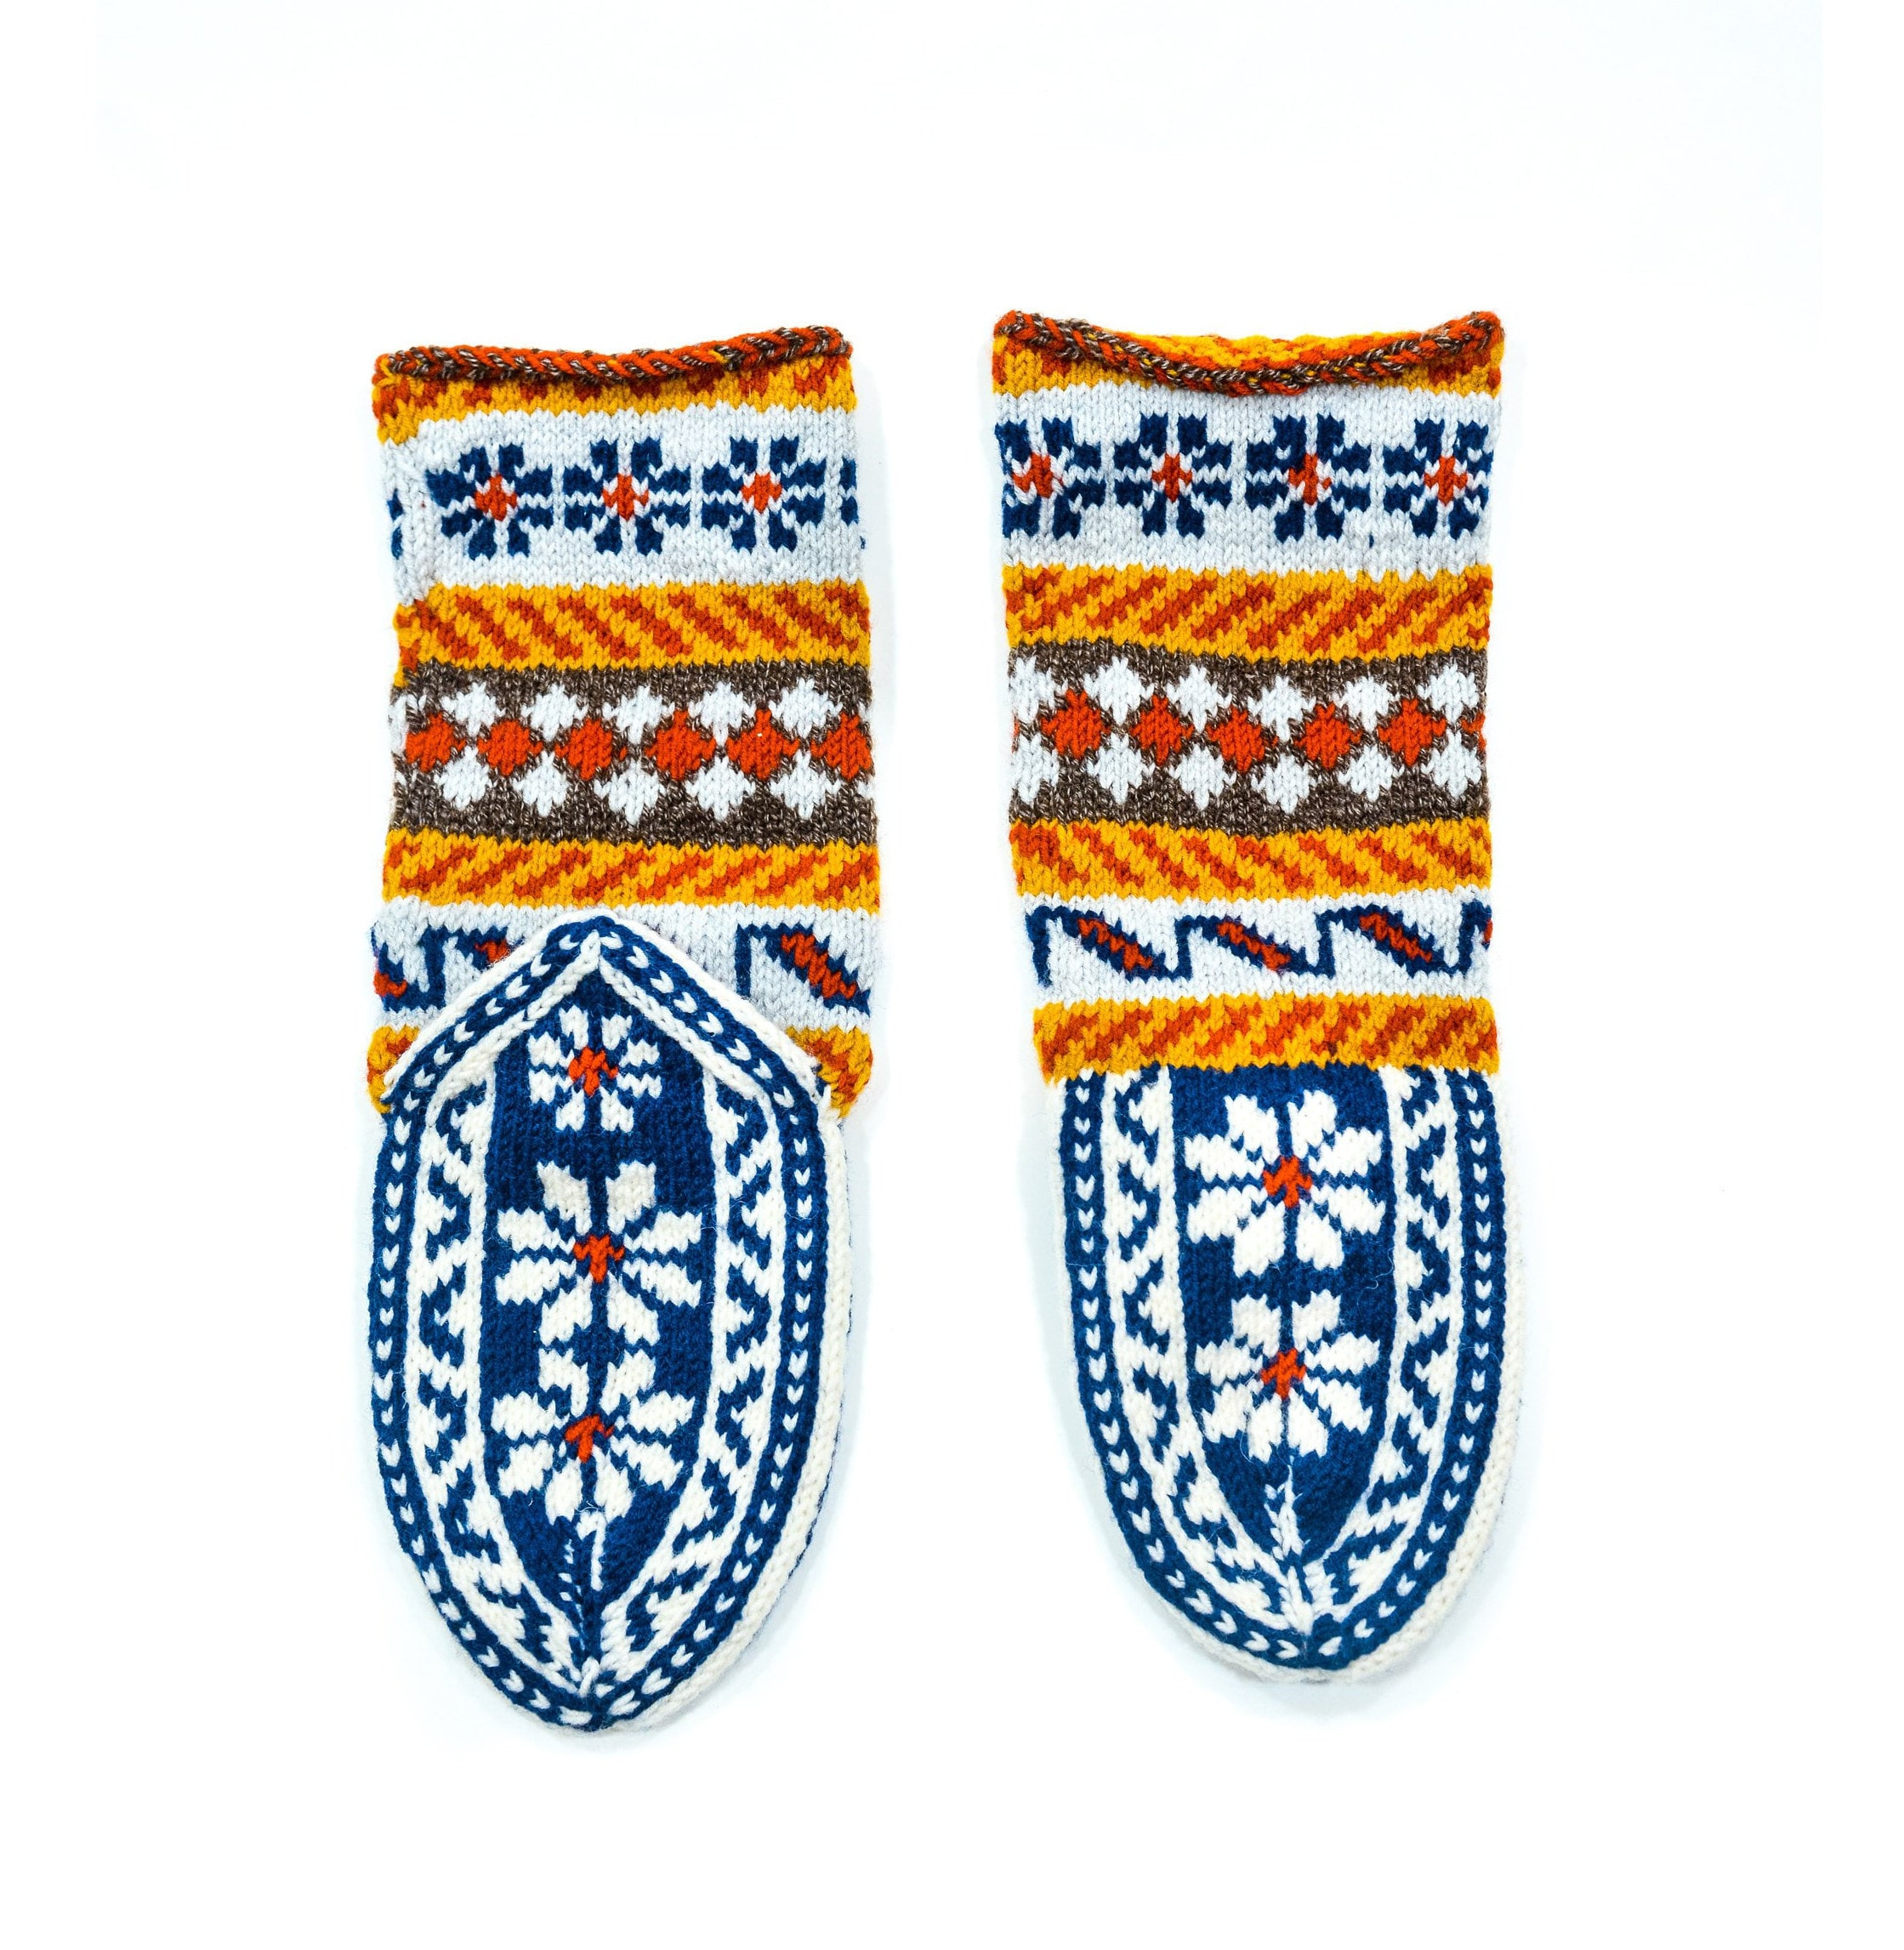 d35dc3cf2210c Women's US 8-9 Blue and White Colorful Mukluk Style Long Boho Fair Isle  Slippers WITH or WITHOUT Suede Soles